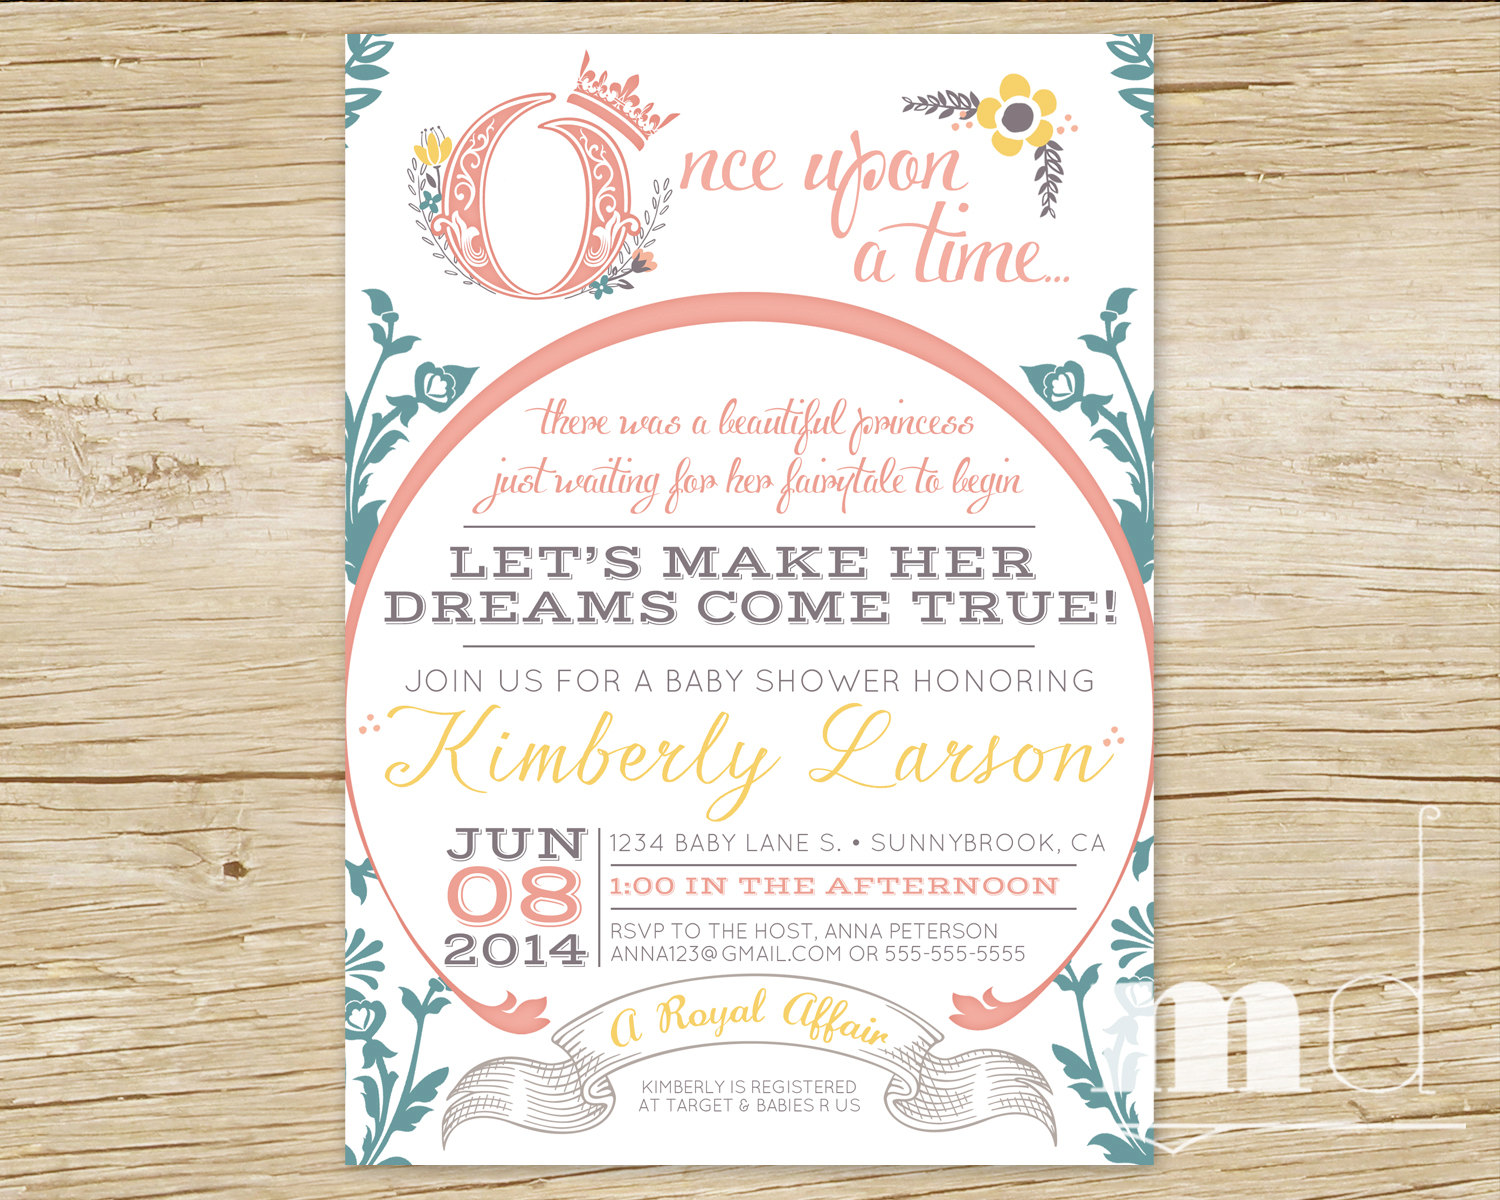 Full Size of Baby Shower:baby Shower Invitations For Boys Homemade Baby Shower Decorations Baby Shower Ideas Nursery Themes For Girls Girl Baby Shower Decorations Baby Shower Decorations For Girls Baby Girl Themed Showers Nautical Baby Shower Invitations For Boys